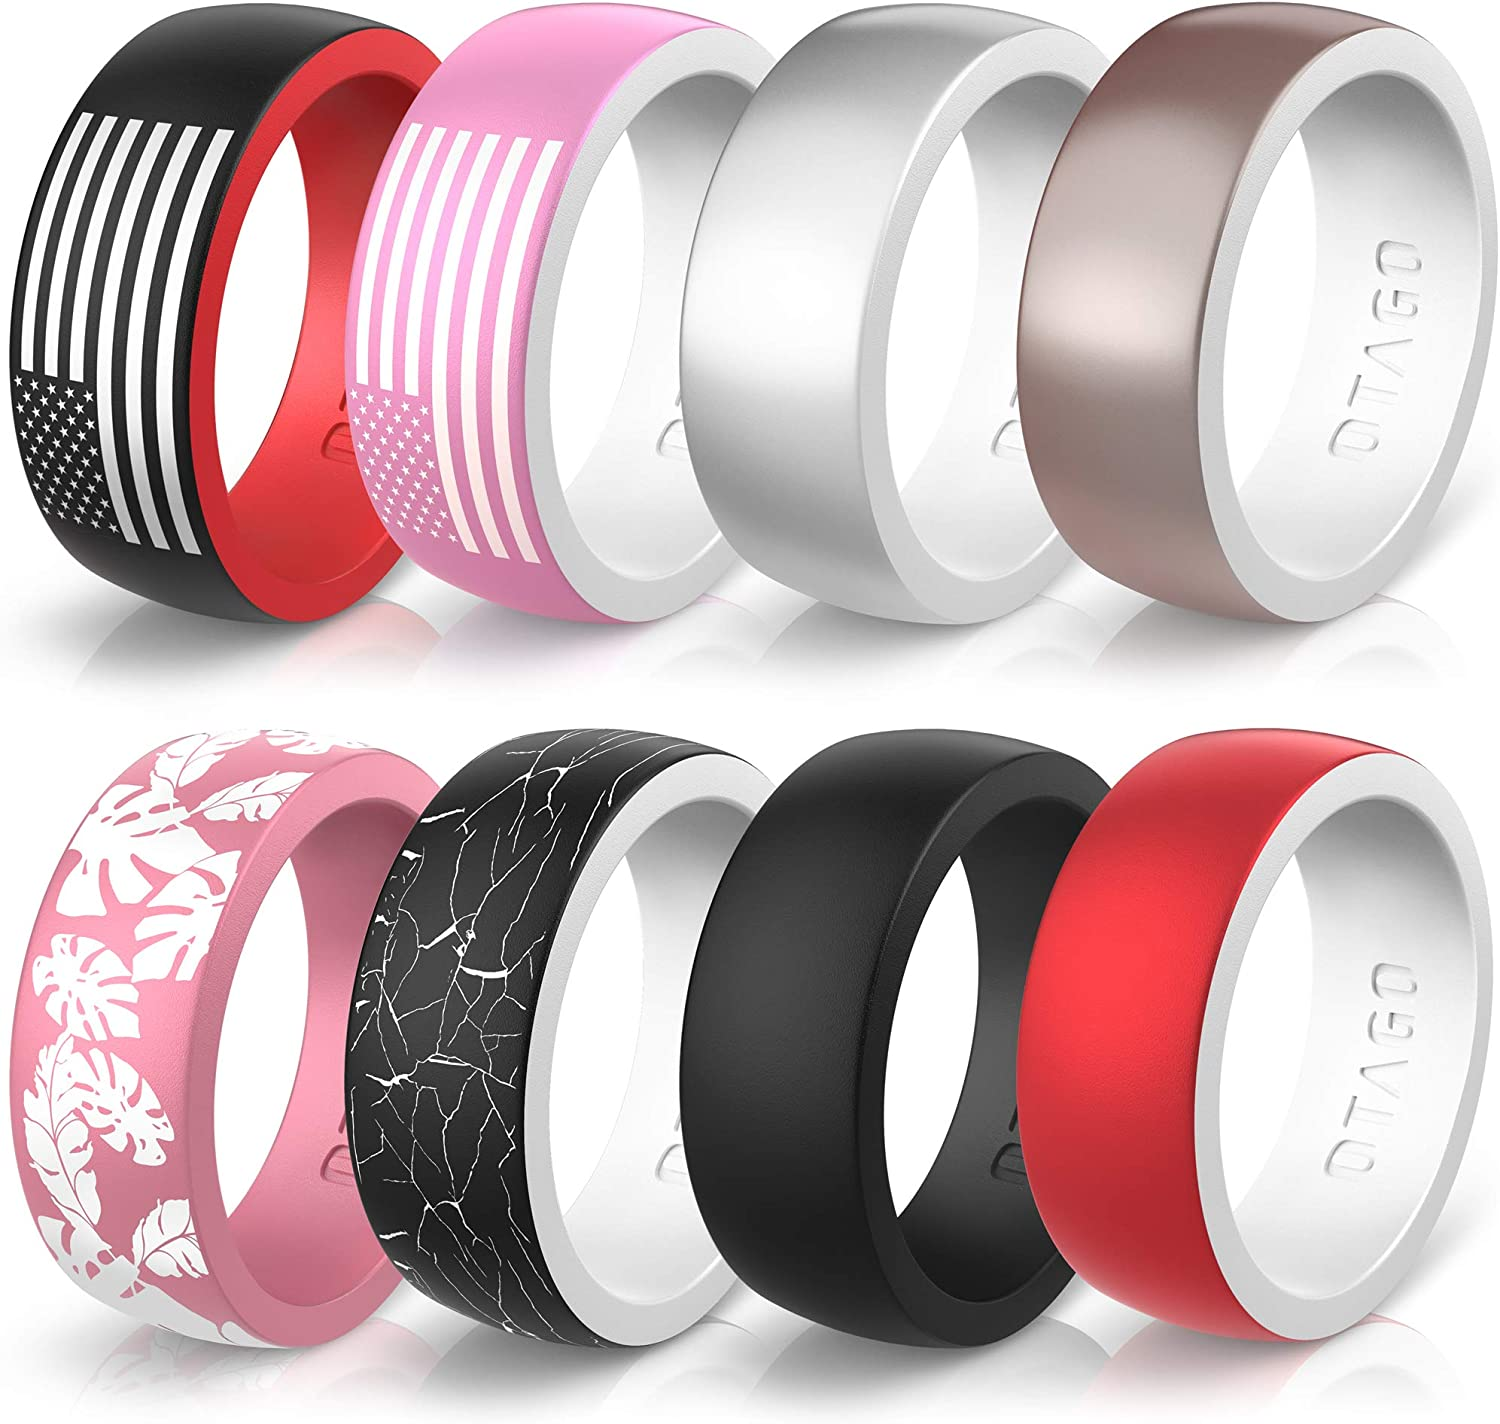 Lightness and Soft for Active Stylish Adorable Sports Wedding Bands Ring.(Size5-12) OTAGO Silicone Wedding Rings for Men 8 Packs Multicolor Collection 8 mm Wide and 2mm Thick